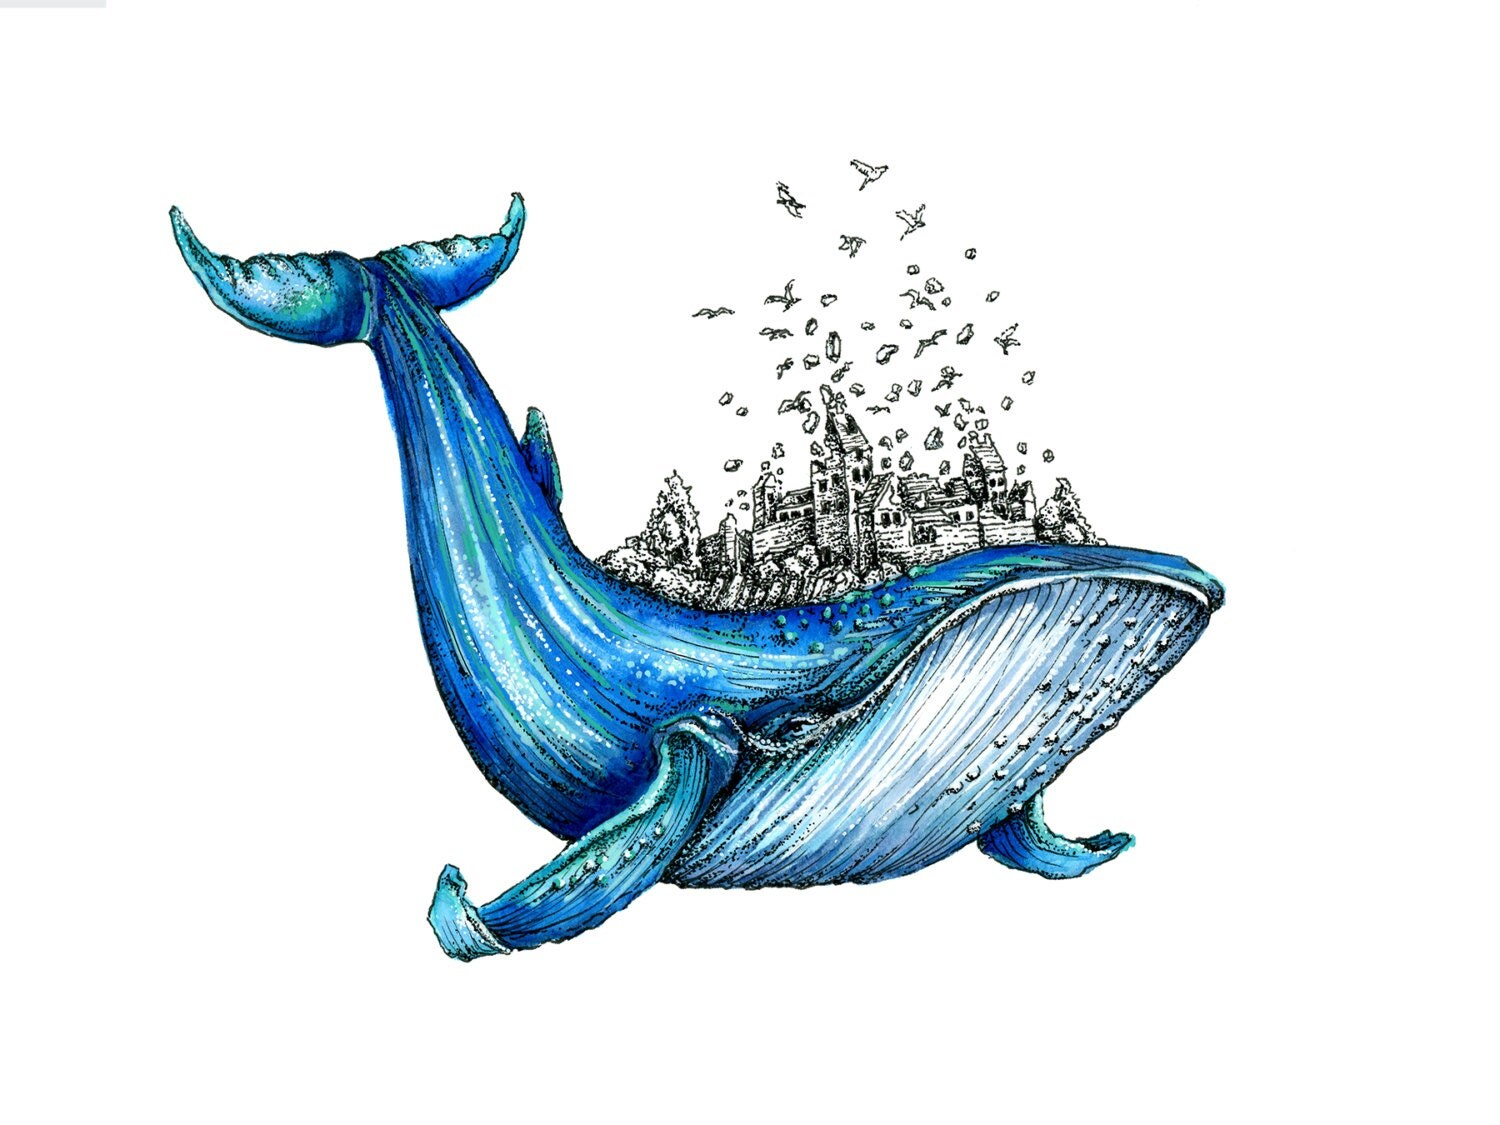 Uncategorized Blue Whale Pictures To Print blue whale art print watercolor pen and ink illustration